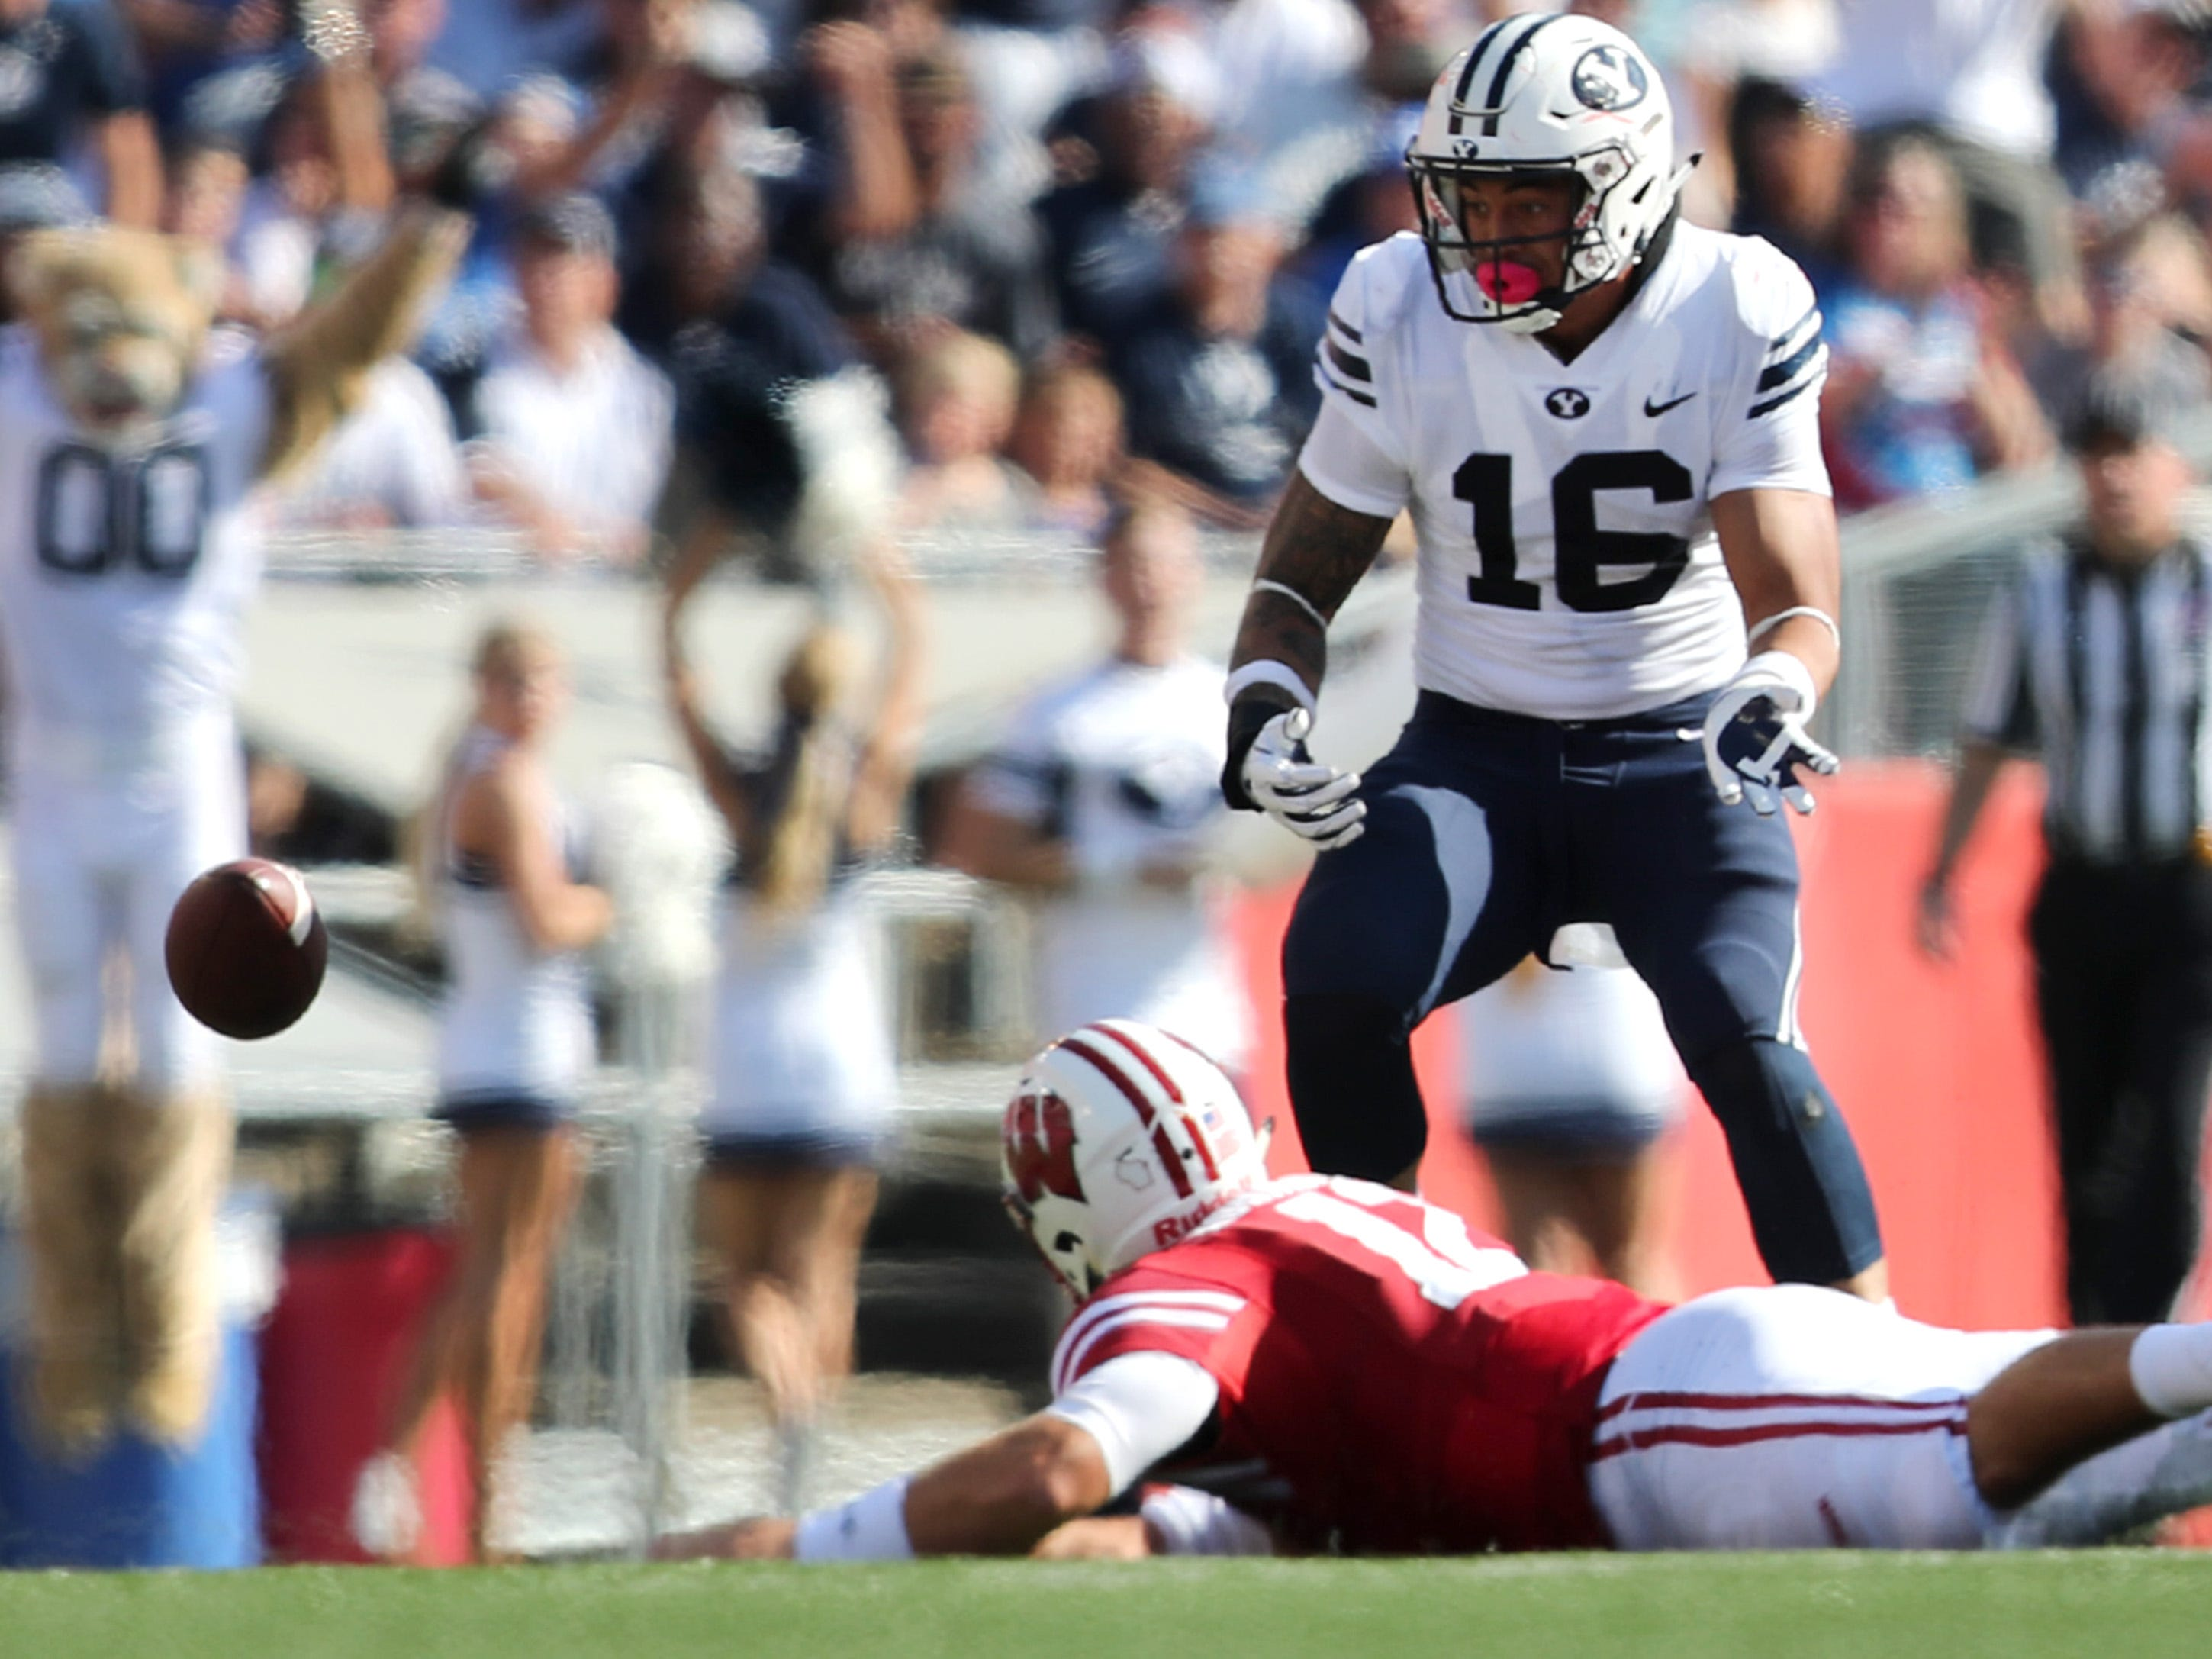 Brigham Young Cougars linebacker Sione Takitaki keeps his eye on the ball after Wisconsin quarterback Alex Hornibrook was called for intentional grounding.